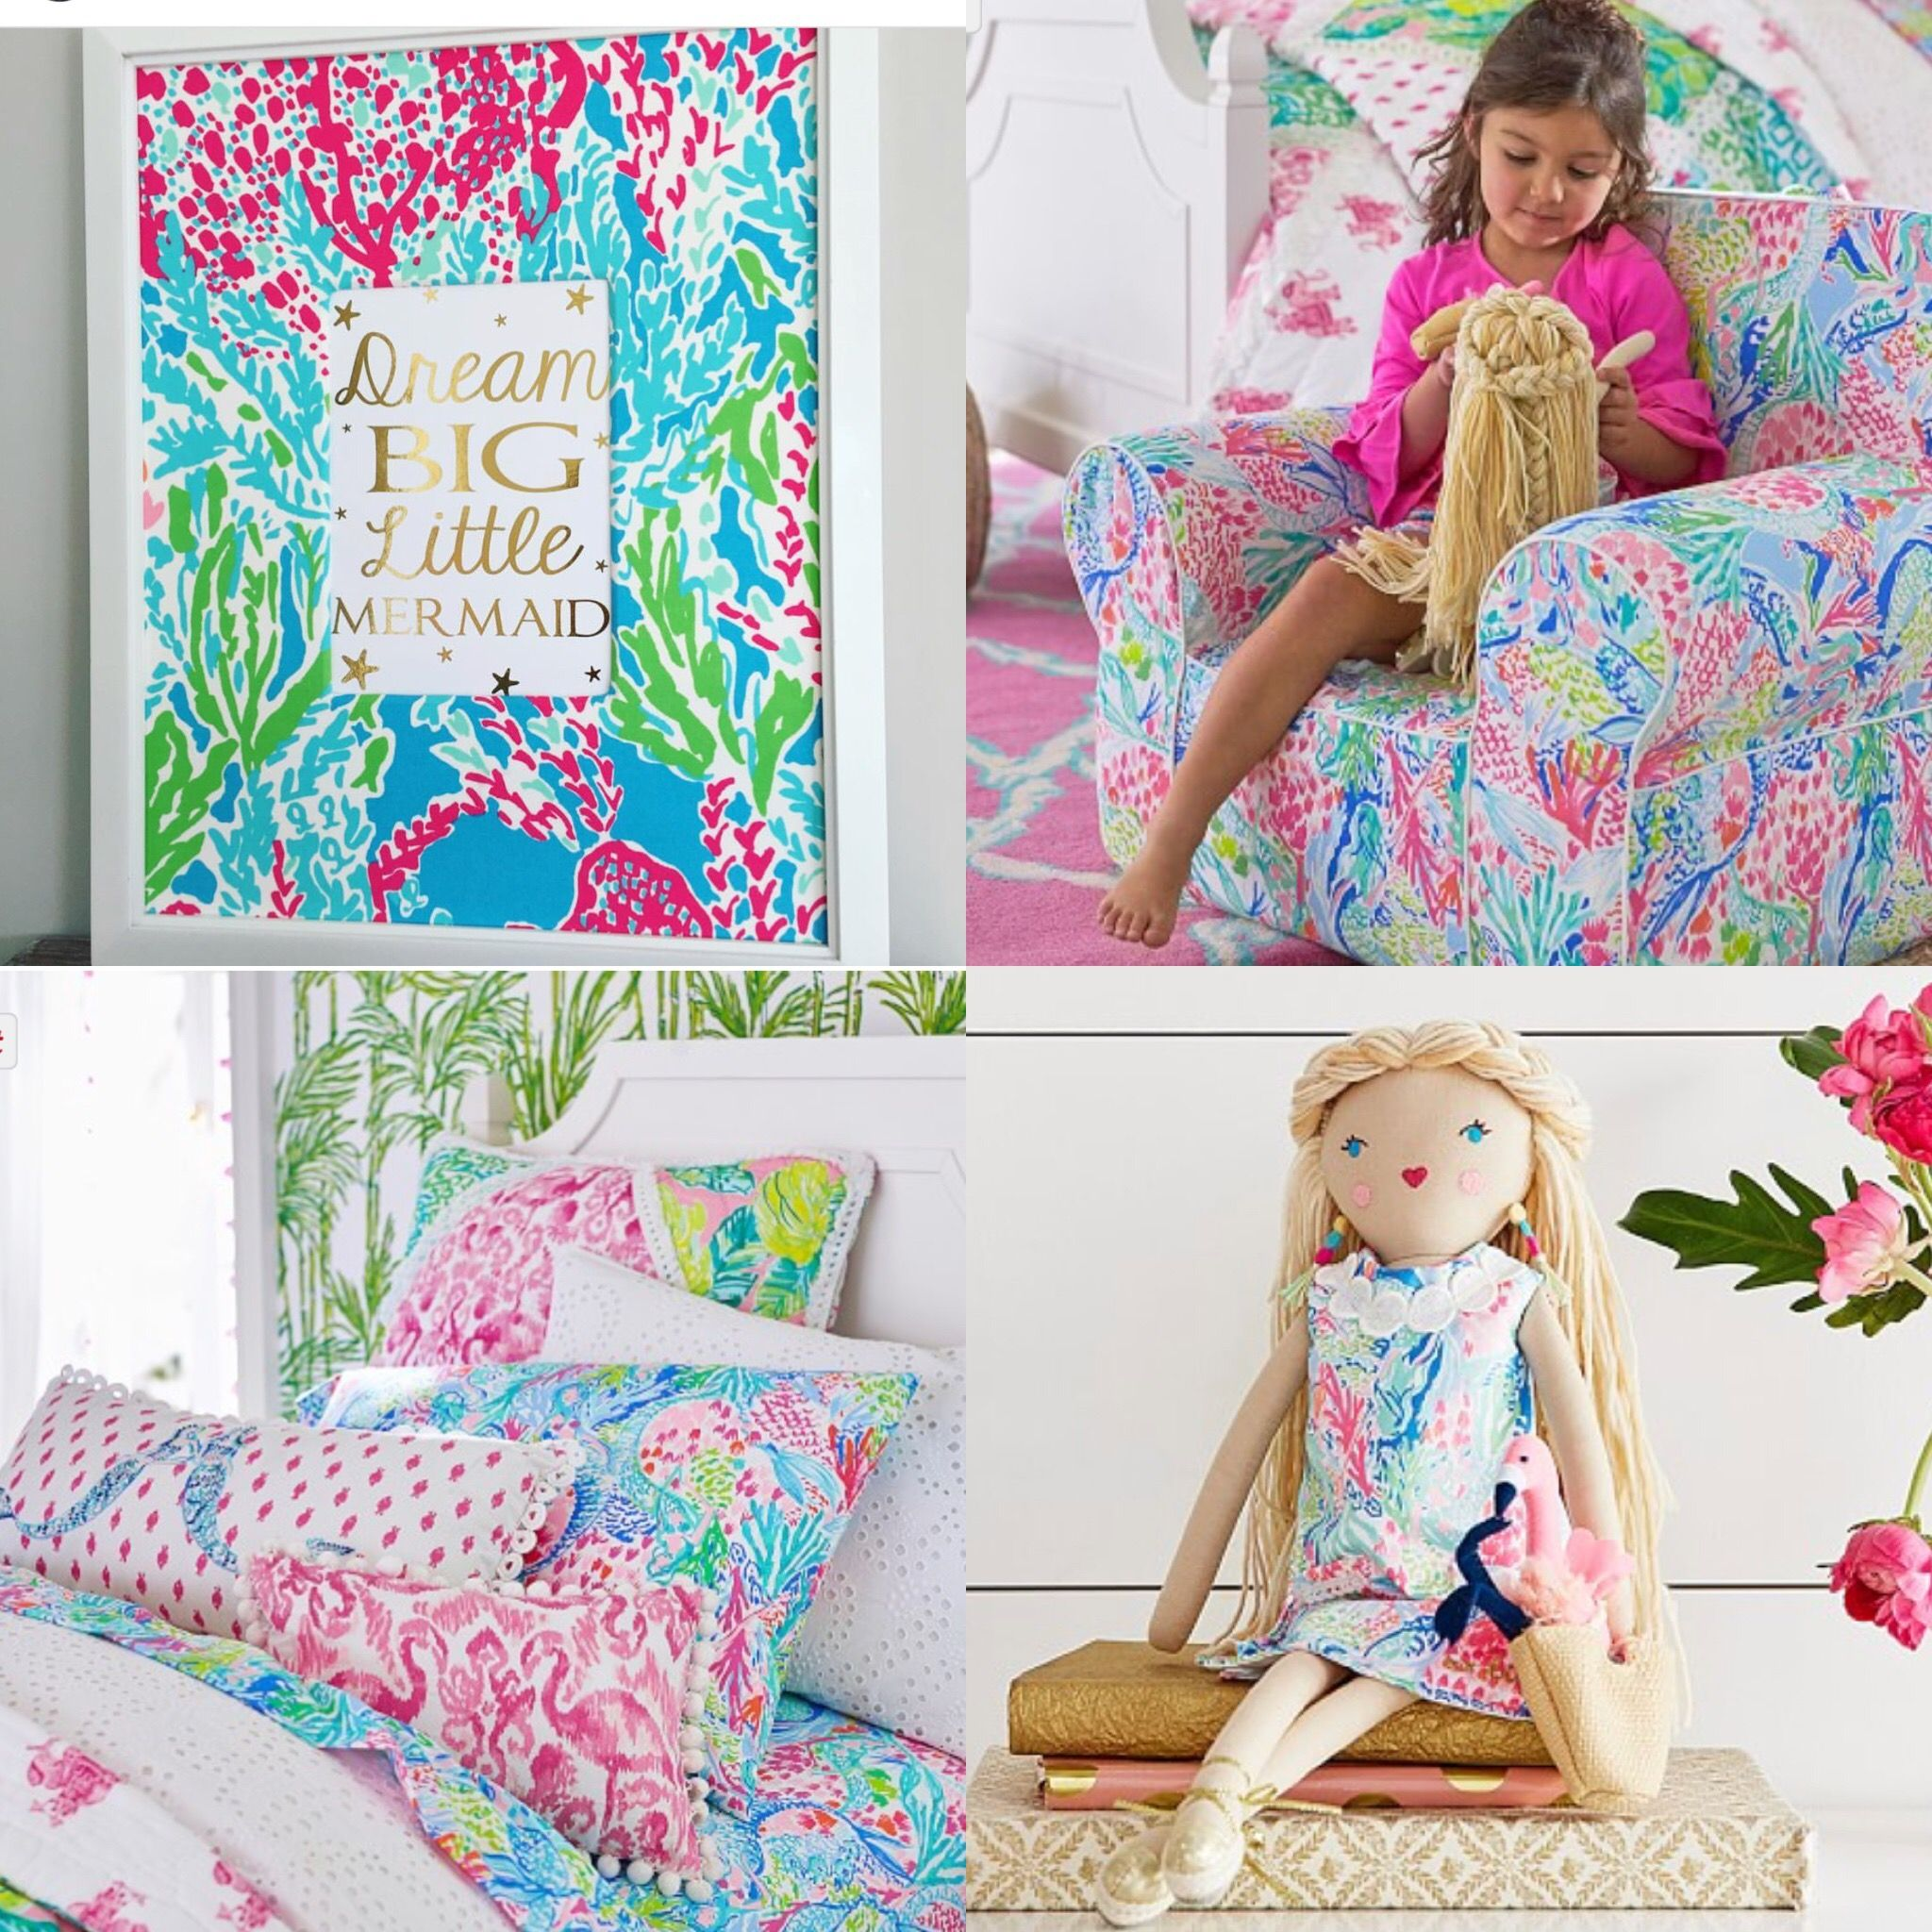 67852dba1c9491 Lilly Pulitzer for Pottery Barn Kids, Mermaid Cove Pottery Barn Kids, Lilly  Pulitzer Bedroom Decor, Lilly Pulitzer Let's Cha Cha, Preppy Girl Decor